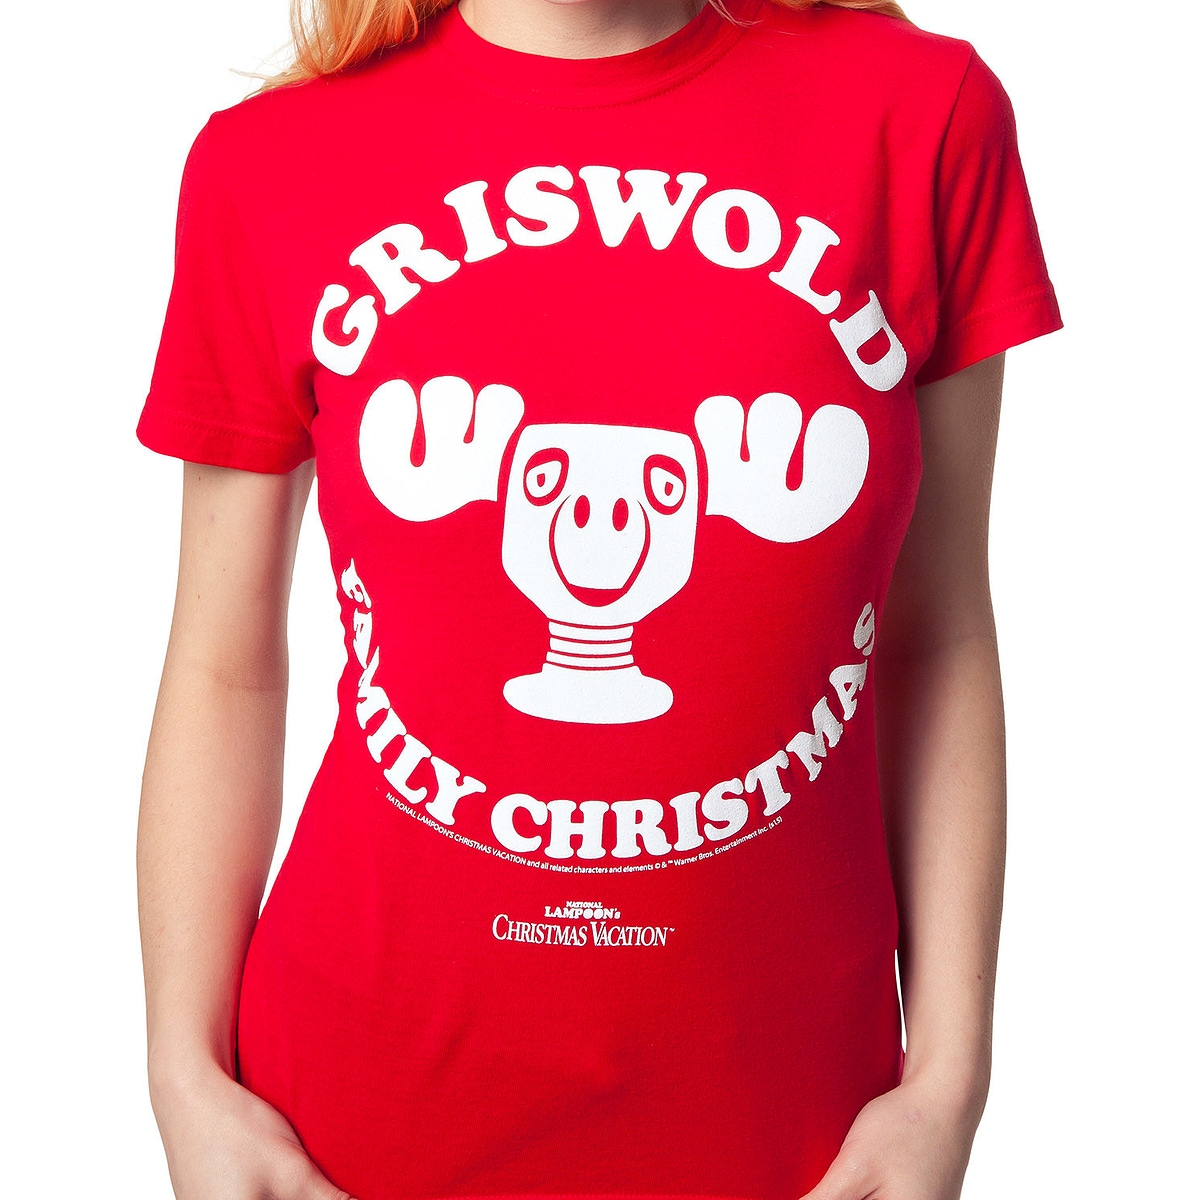 griswold family national lampoons christmas vacation ladies t shirt popcult wear - Griswold Christmas